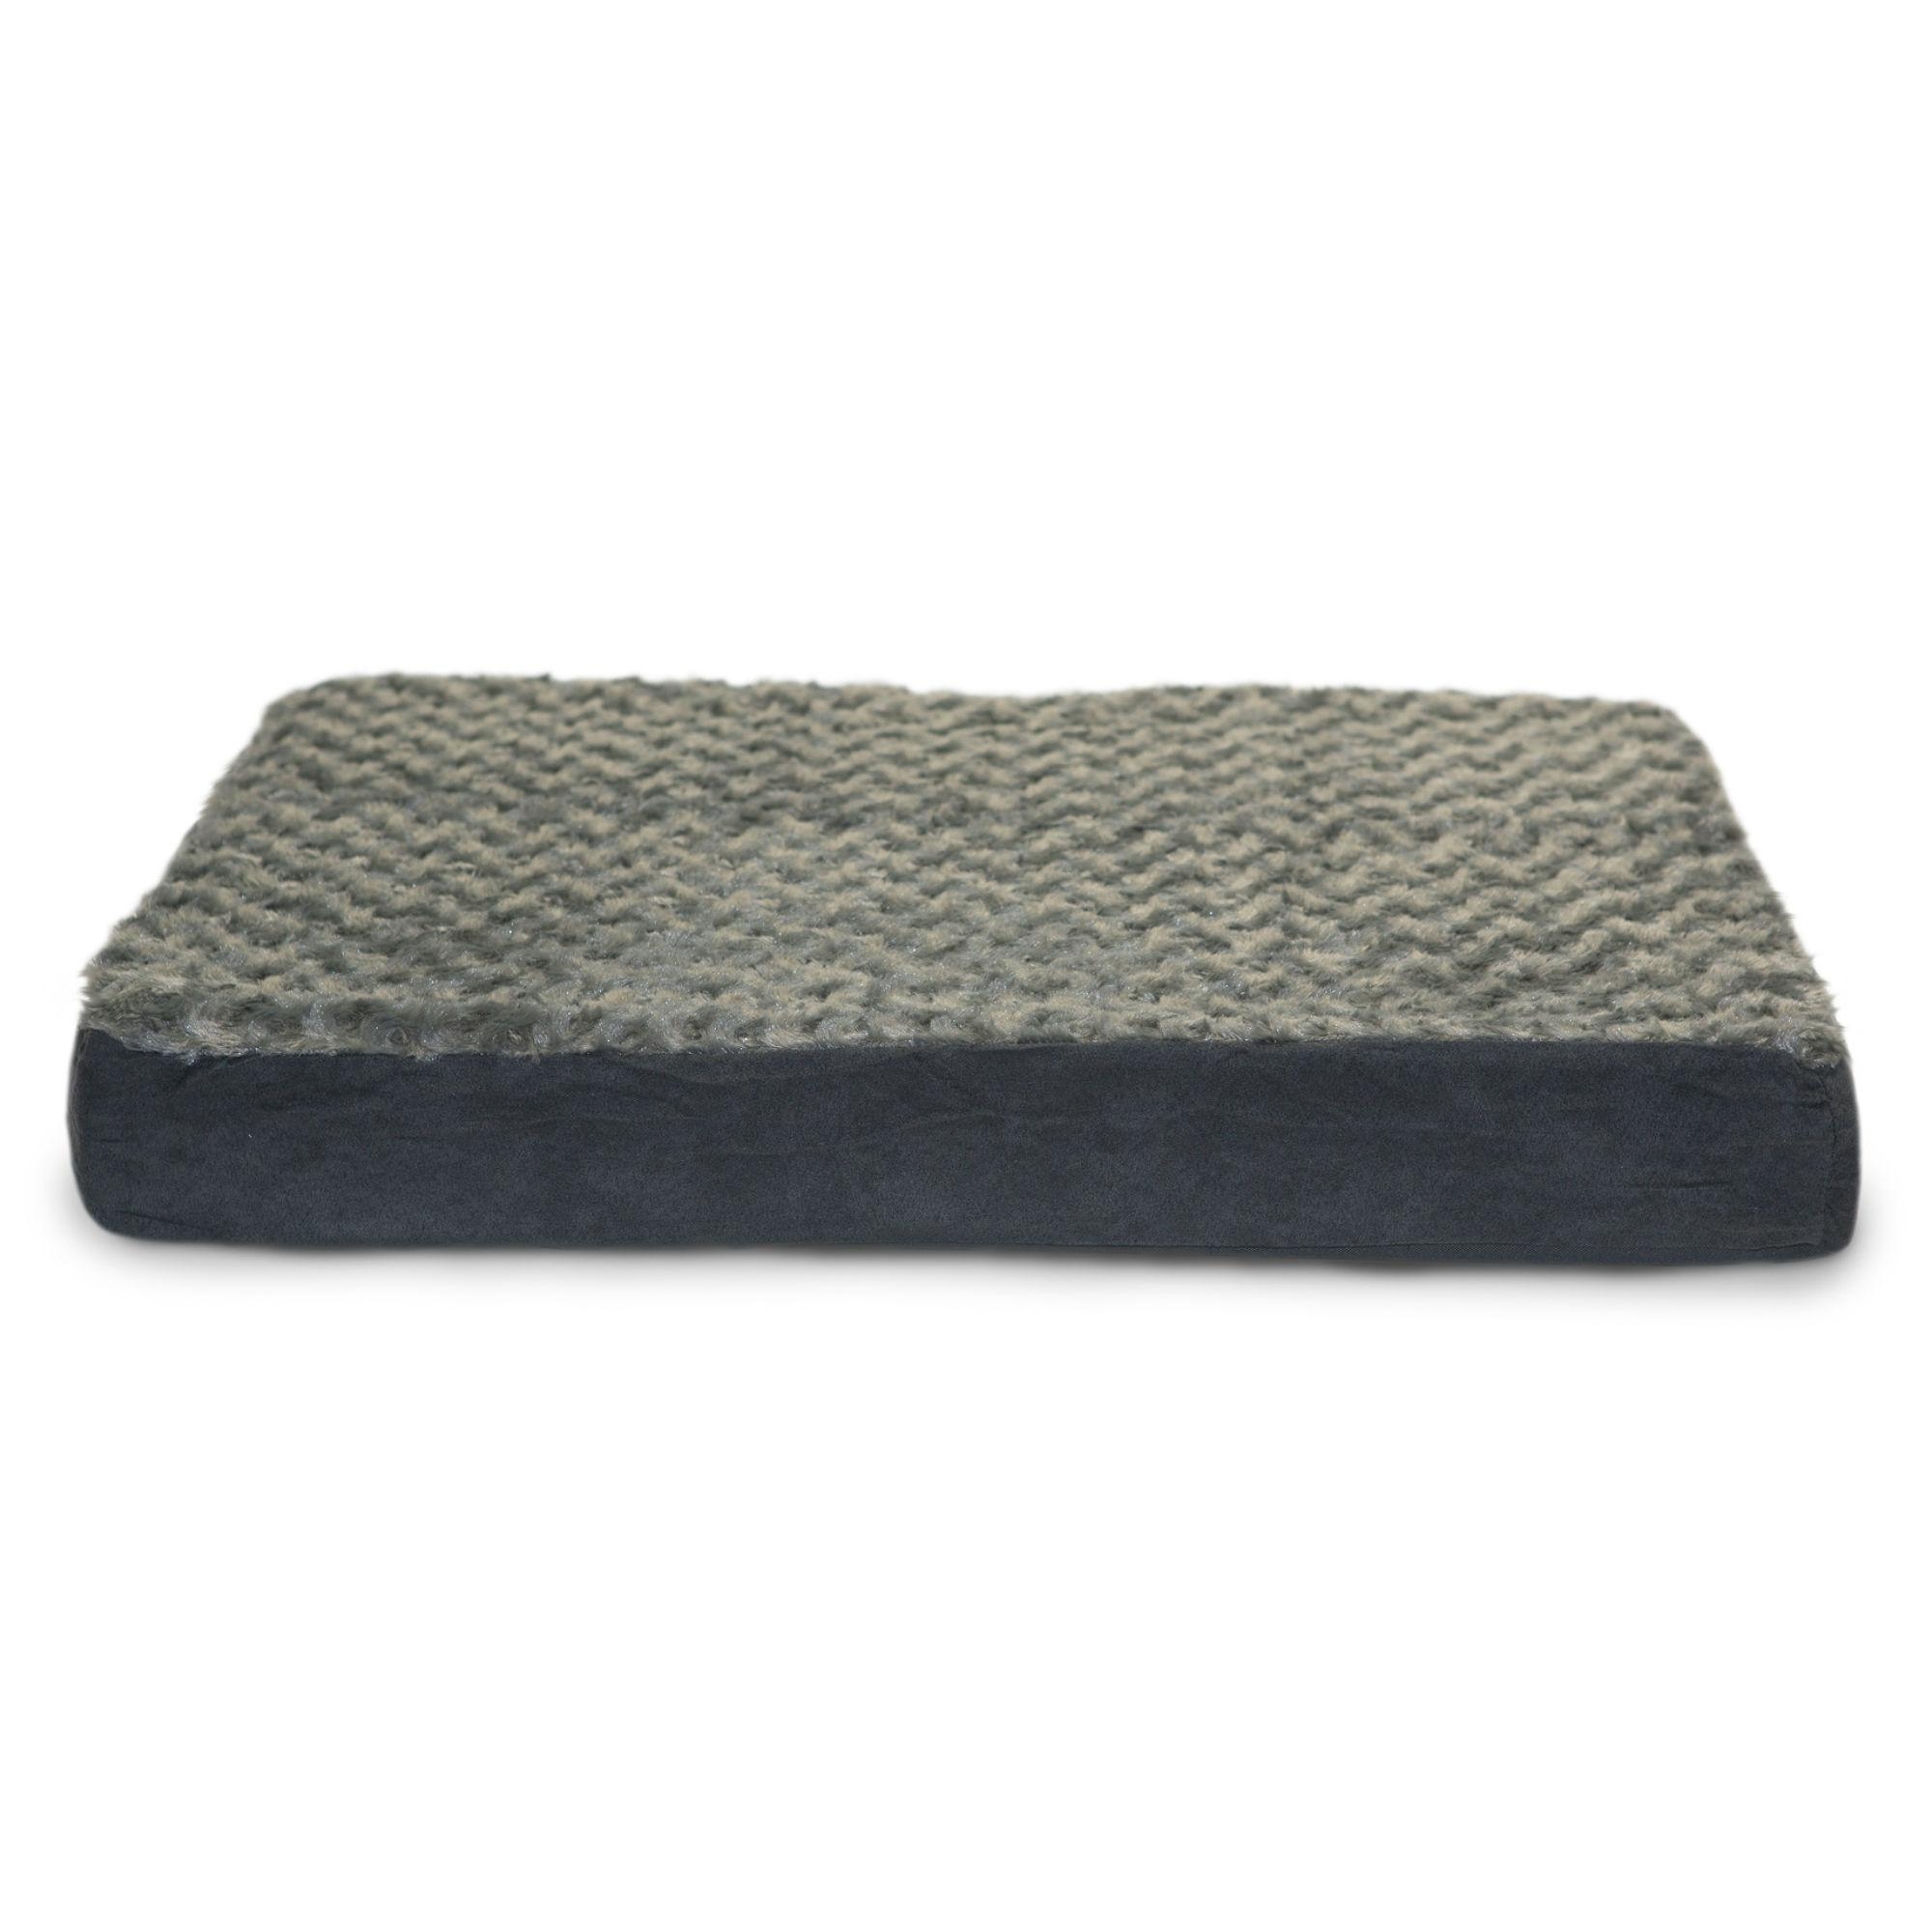 FurHaven Ultra Plush Deluxe Cooling Gel Top Pet Bed - Gray